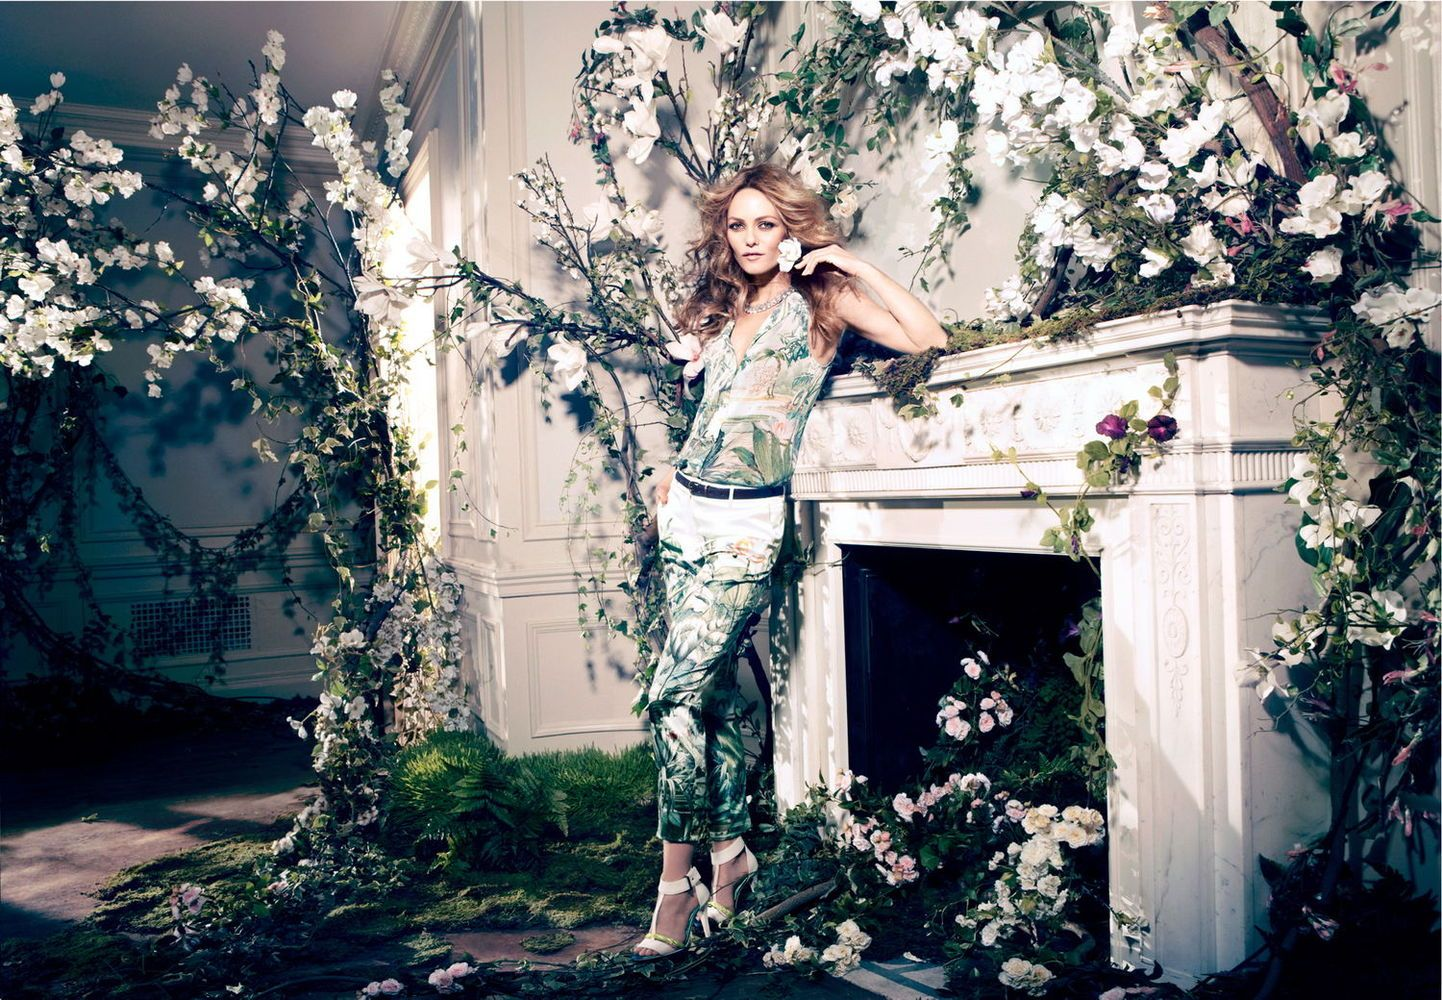 vanessa-paradis-hm-conscious-collection-2013-04.jpg